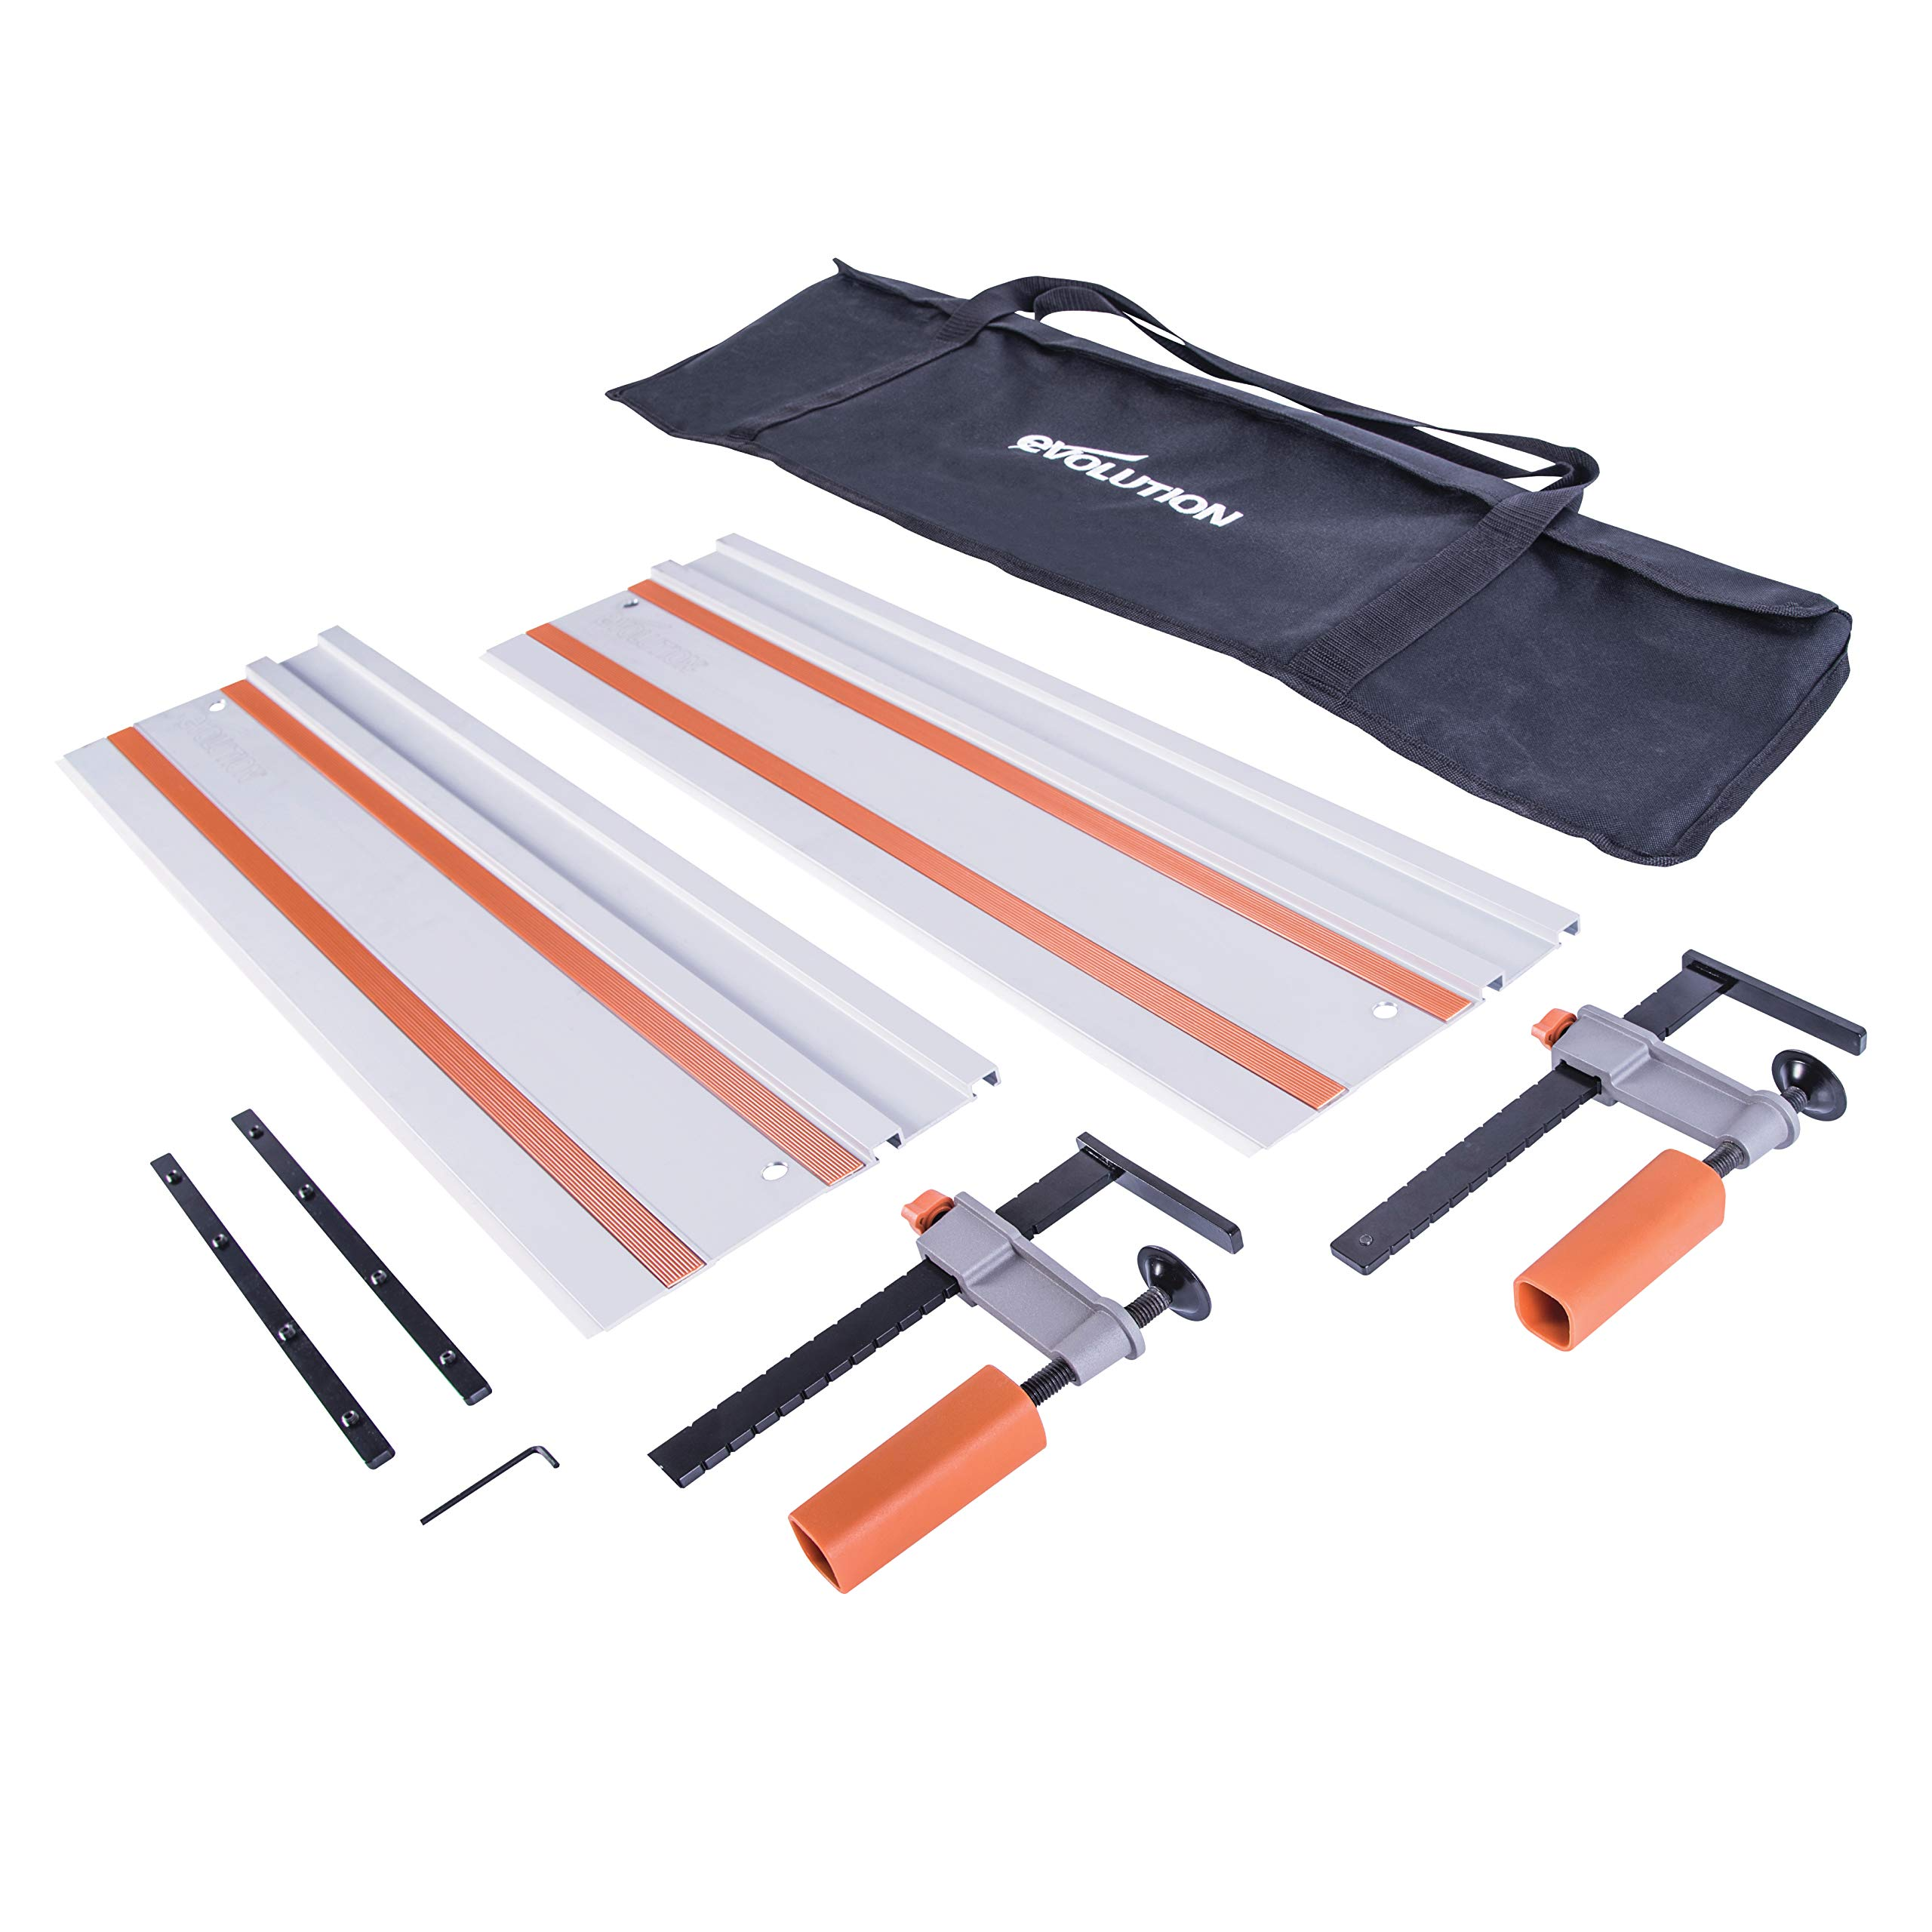 Evolution Power Tools ST1400 Track/Guide Rail For Circular Saws (Clamps and Carry Bag Included), 1400 mm by Evolution